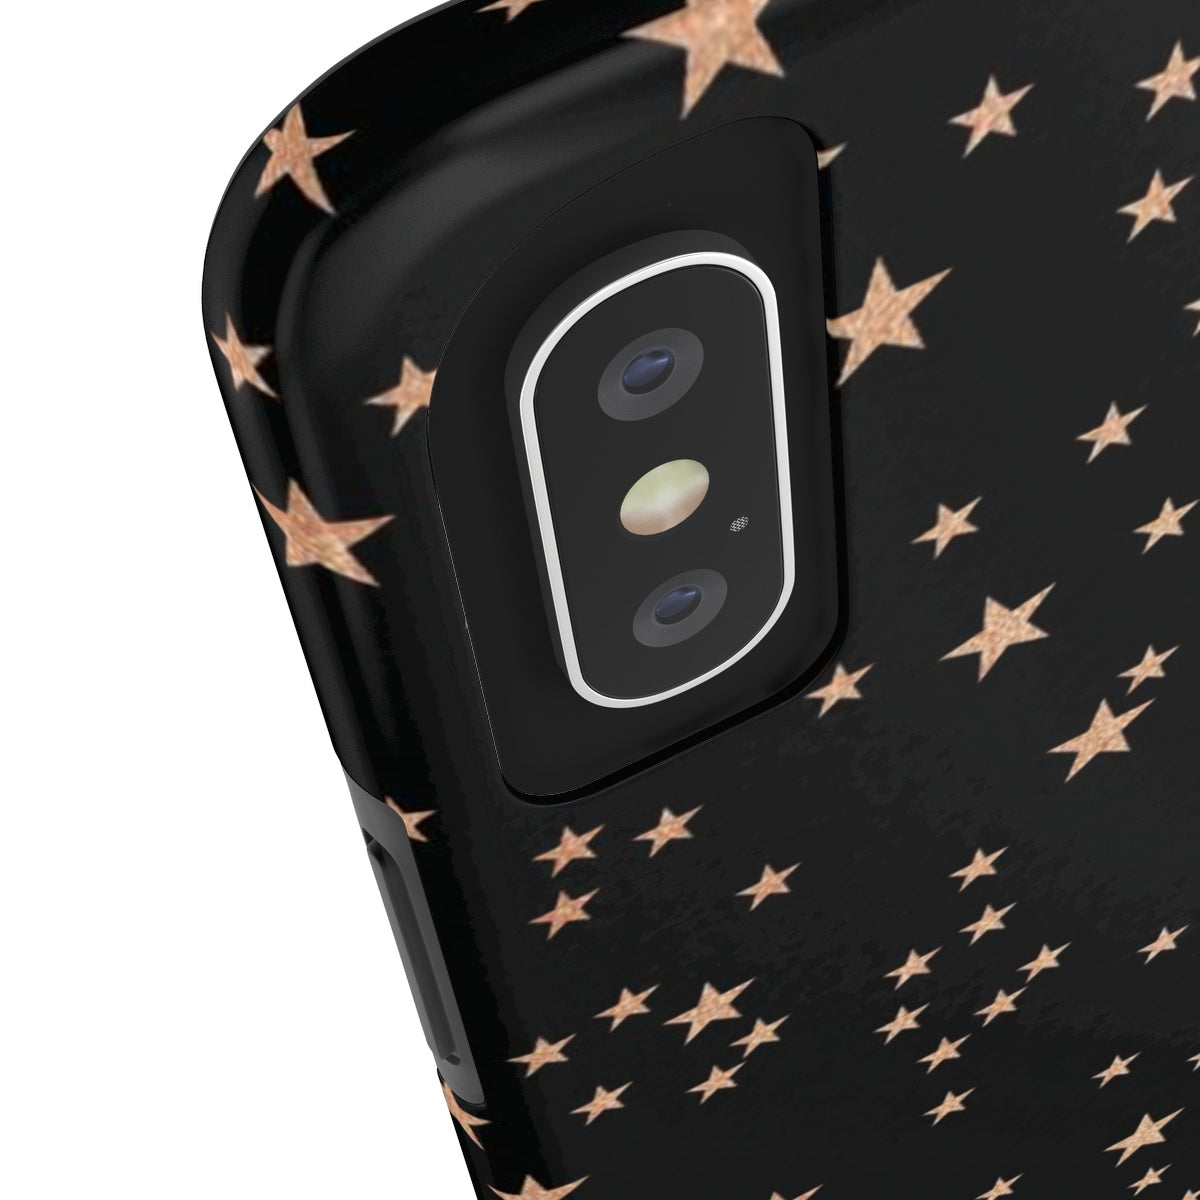 Twinkle Added Amour Phone Case